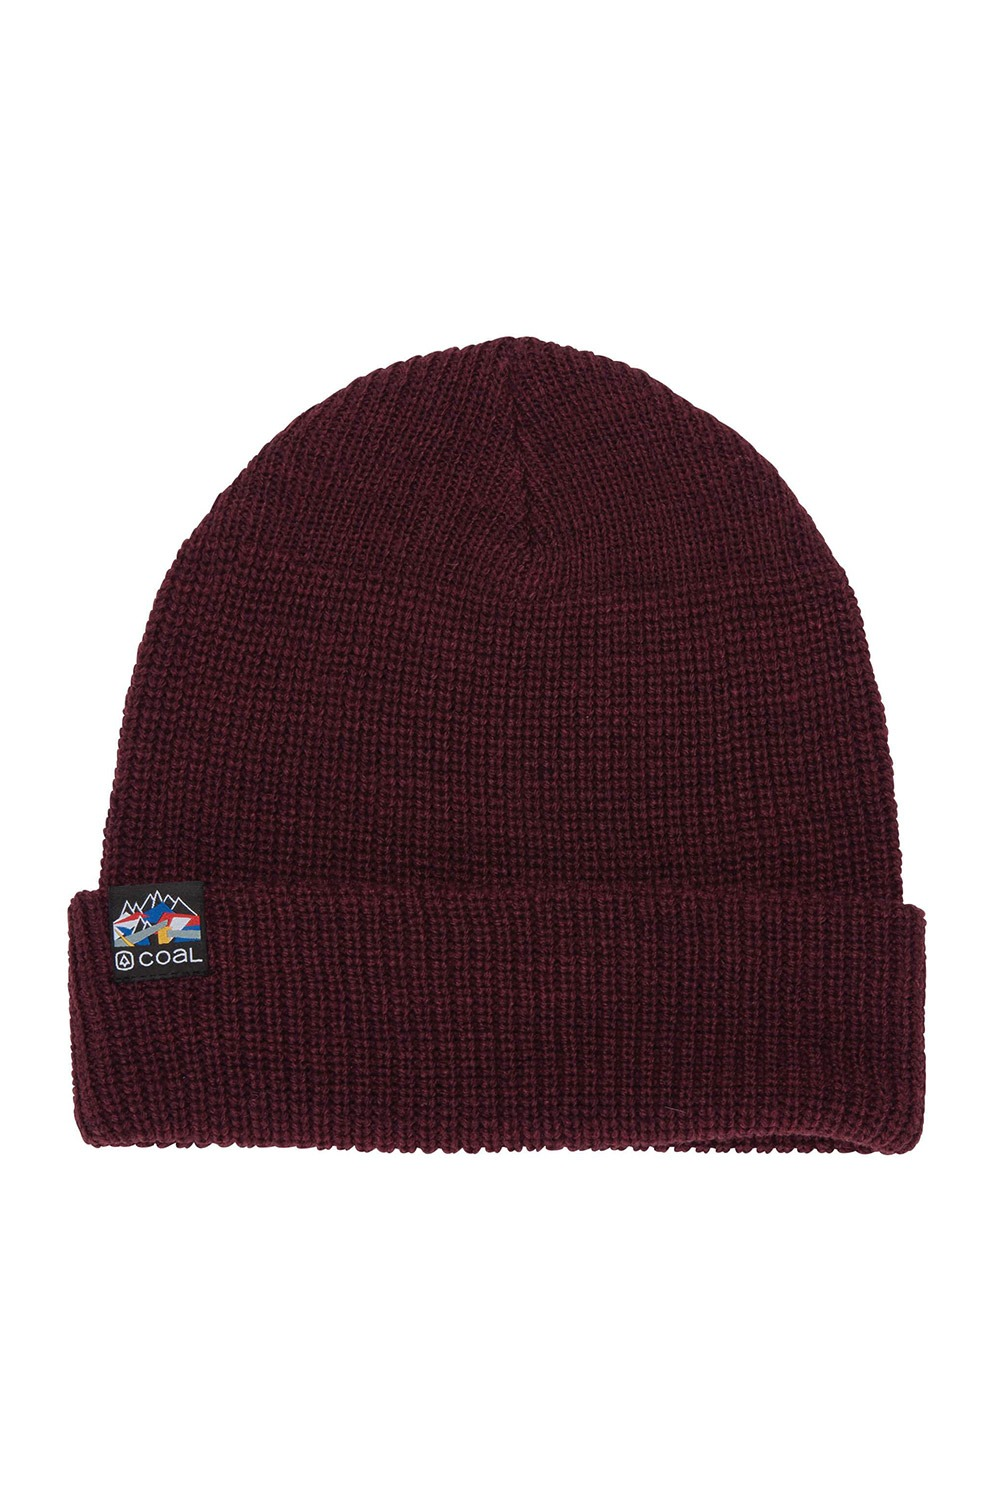 2021 콜 스쿼드 숏비니 모자  COAL THE SQUAD BEANIE_MAR (MAROON)_DICA013MR